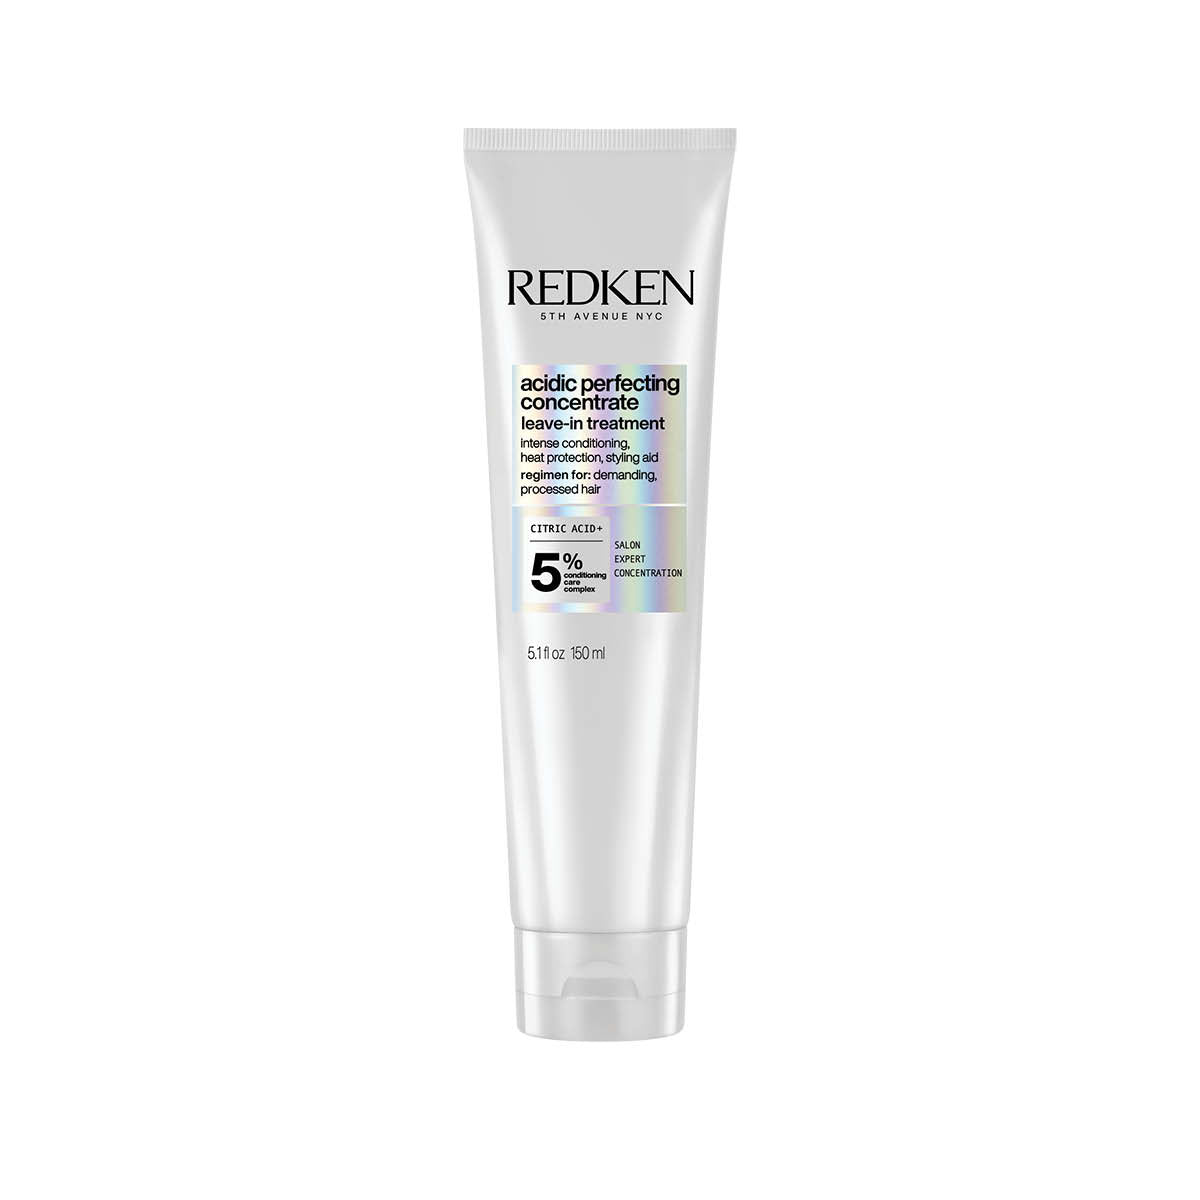 Redken Acidic Bonding Concentrate Perfecting Concentrate Leave-In Treatment